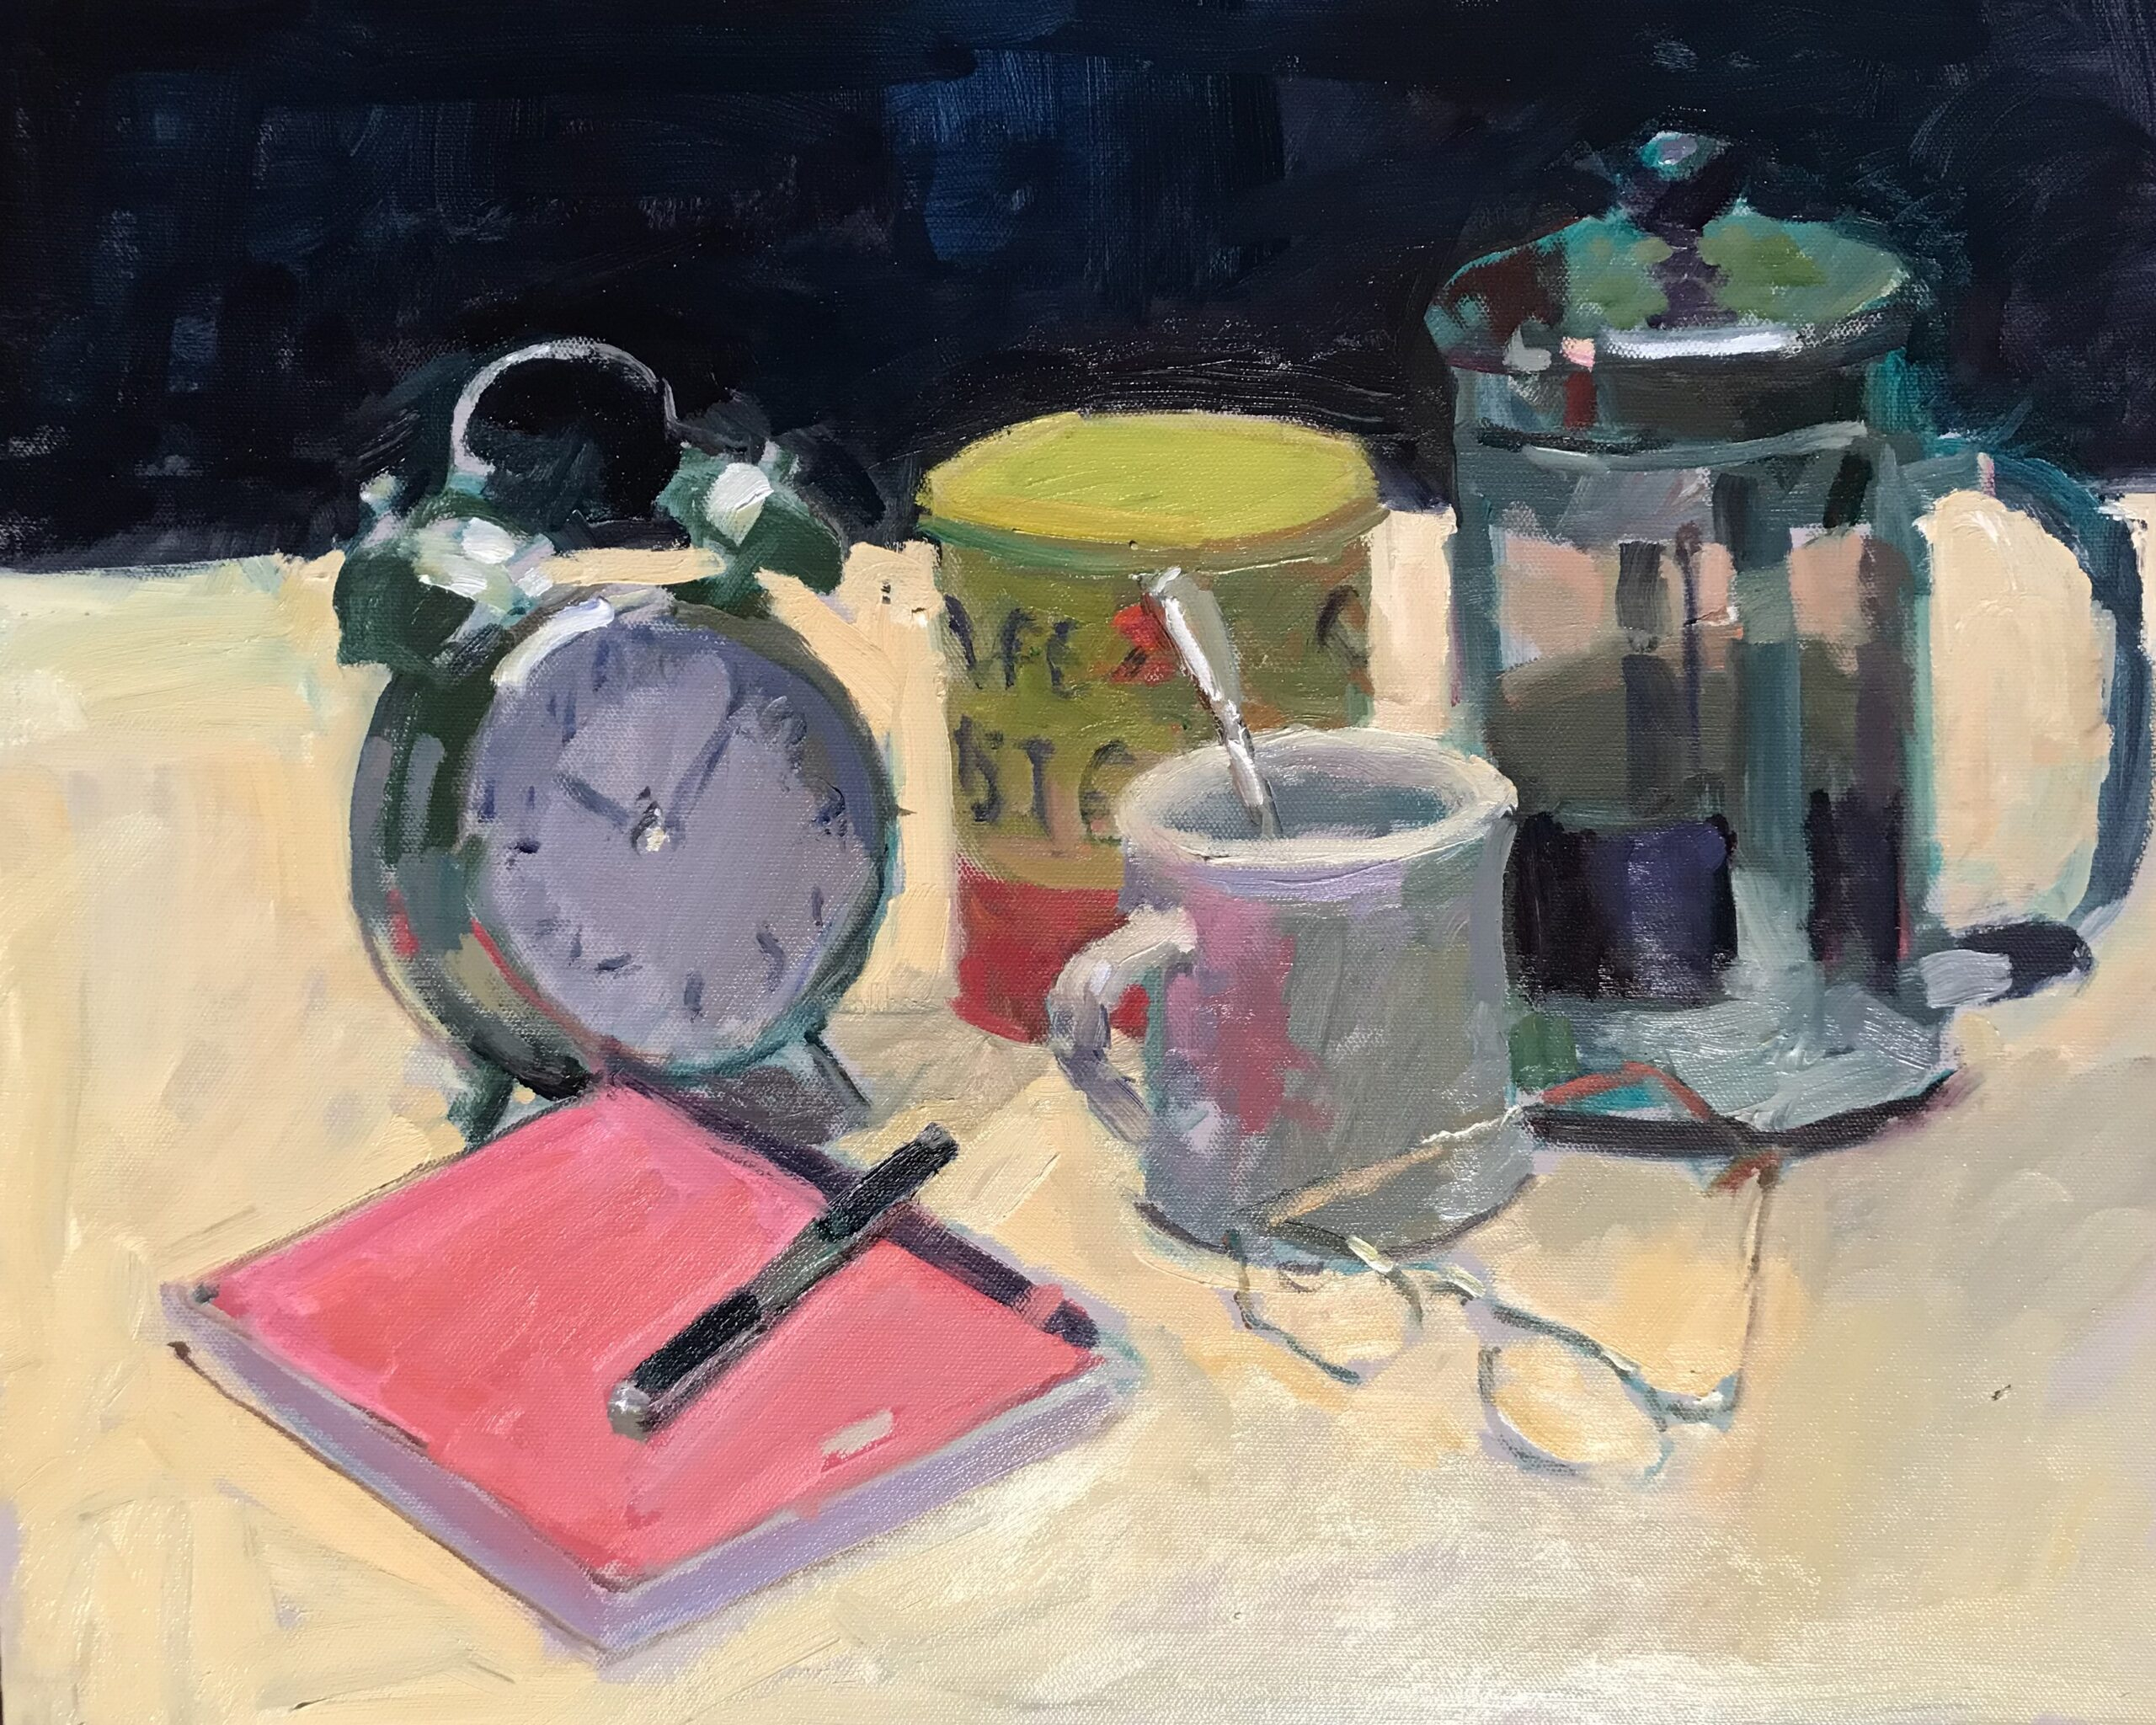 Coffee Break, Oil on Canvas on Pane, 16 x 20 Inches by Susan Grisell $550